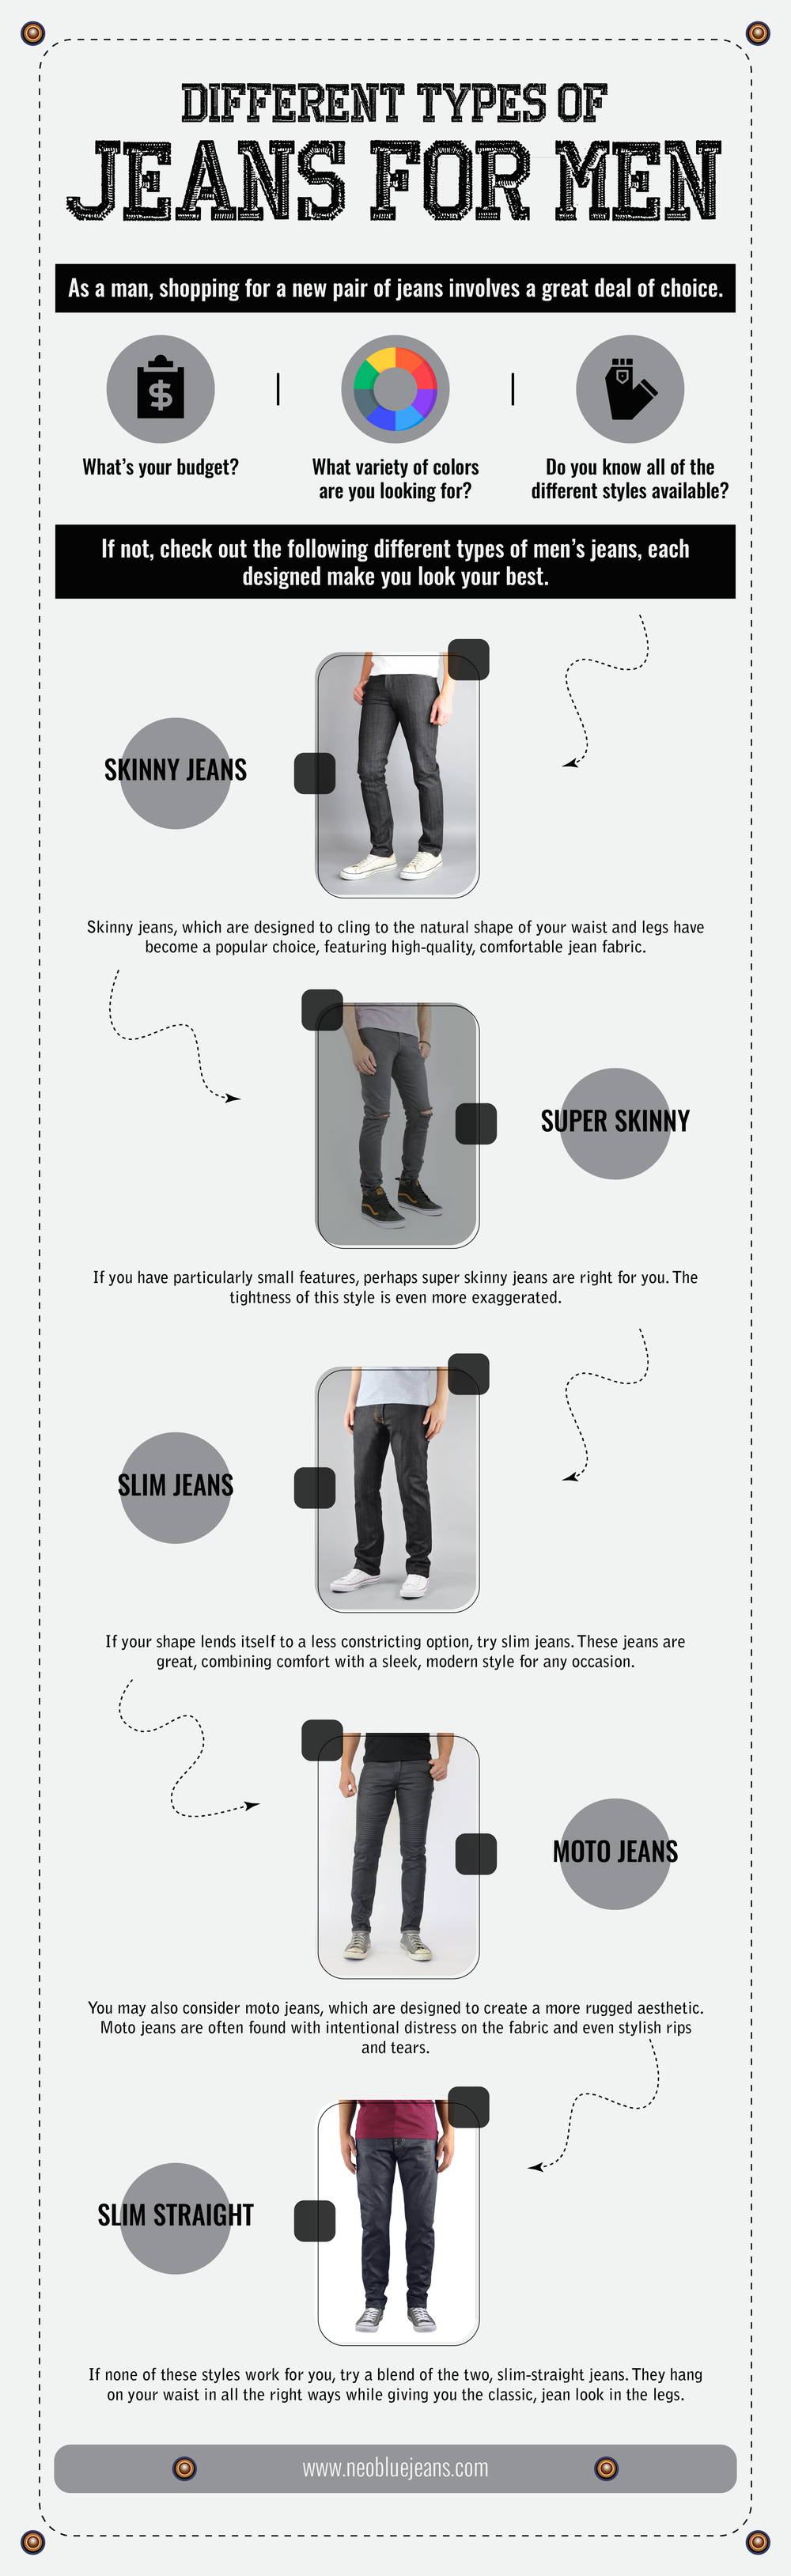 1634775_neobluejeans.com_Different Types of Jeans for Men_1630552.png